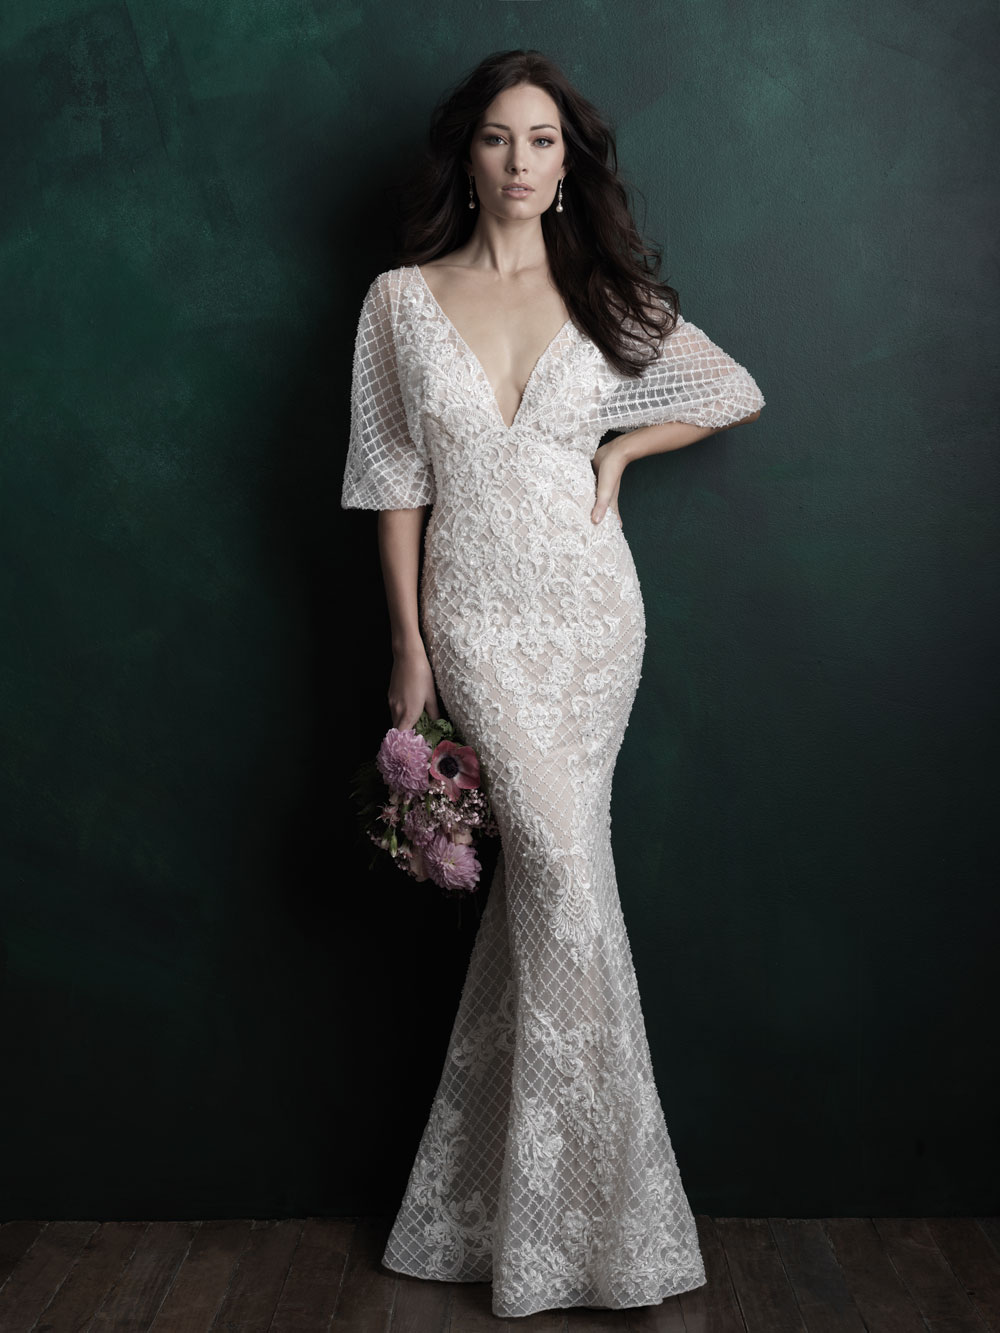 70's inspired bridal gown by Allure Bridals